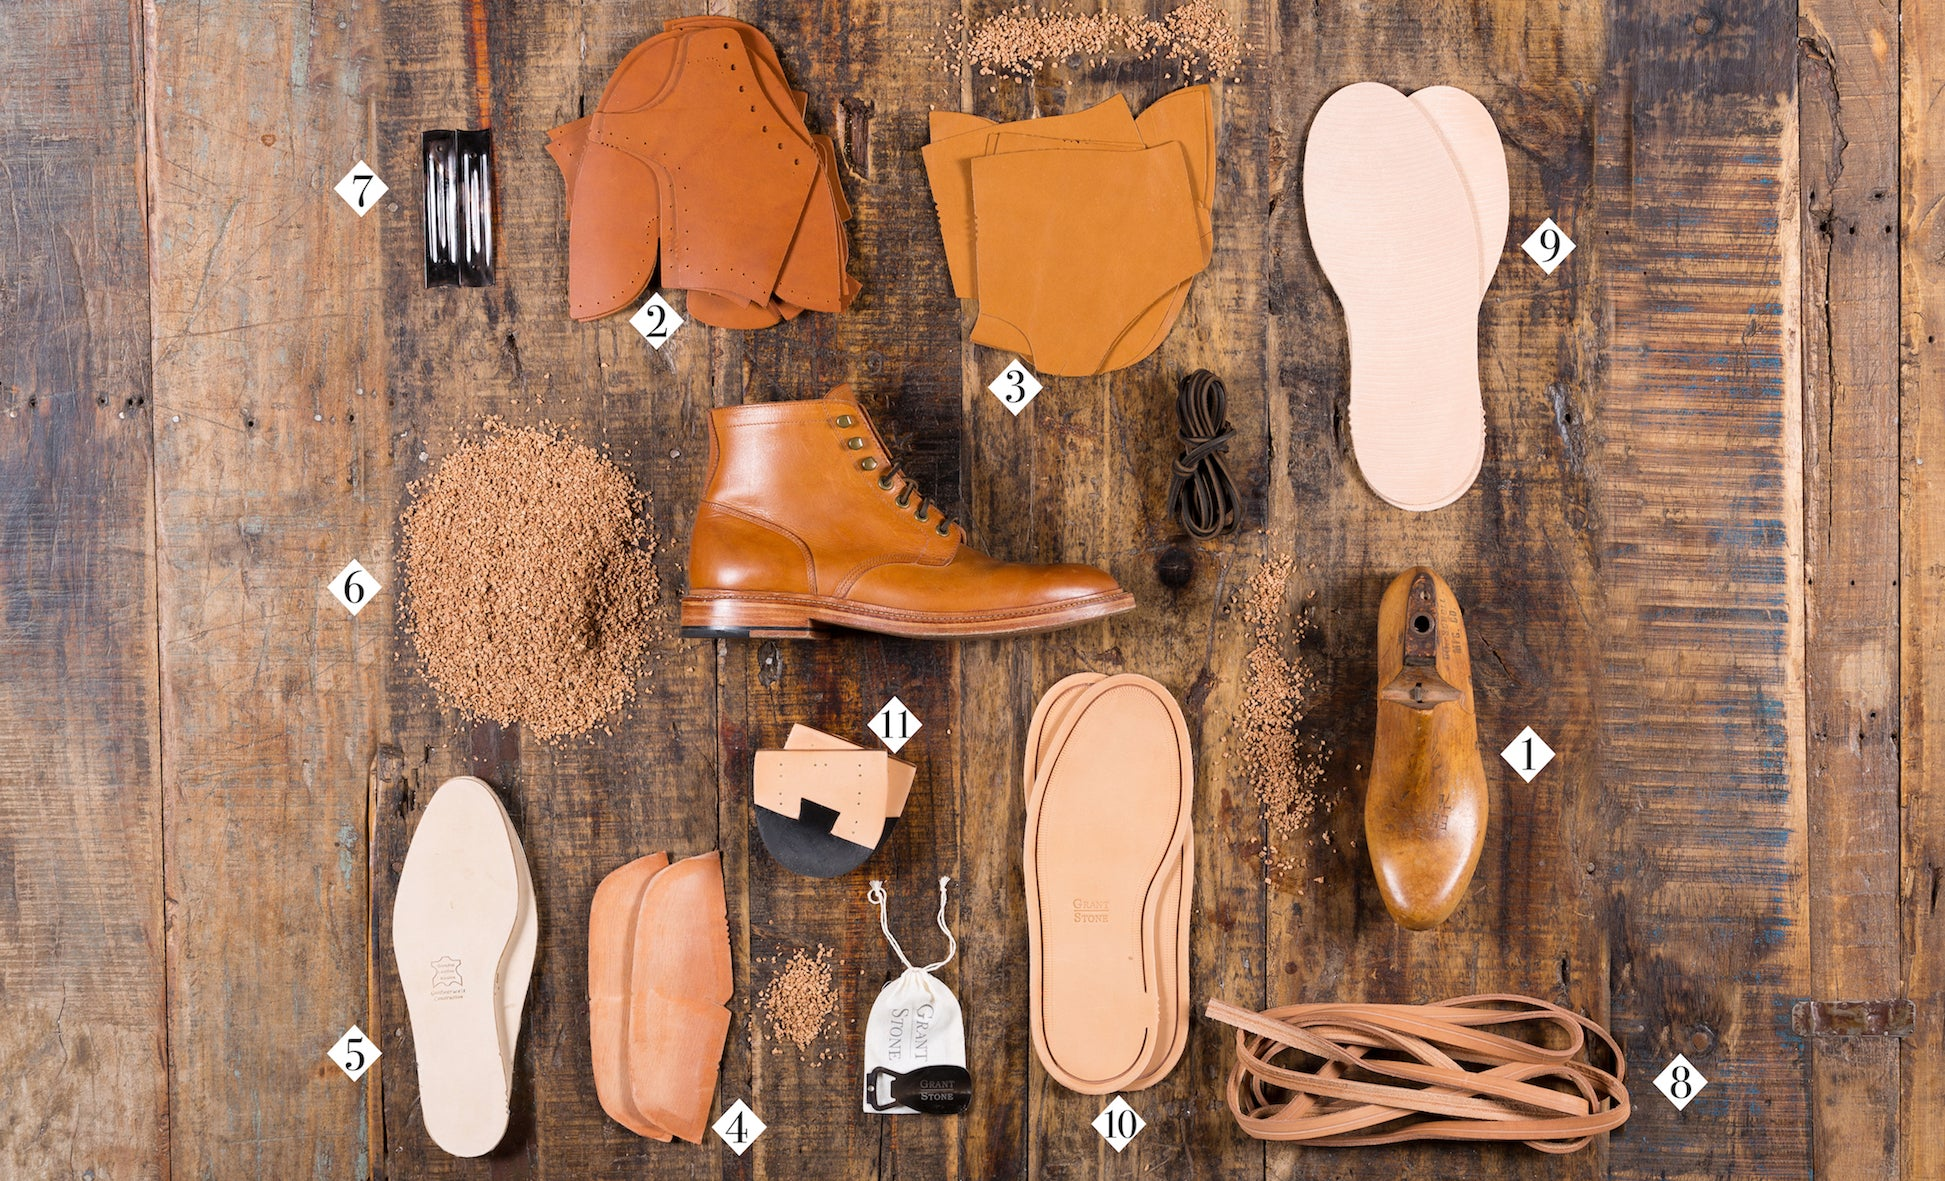 df91e9d526a A shoe purchase was considered an important investment